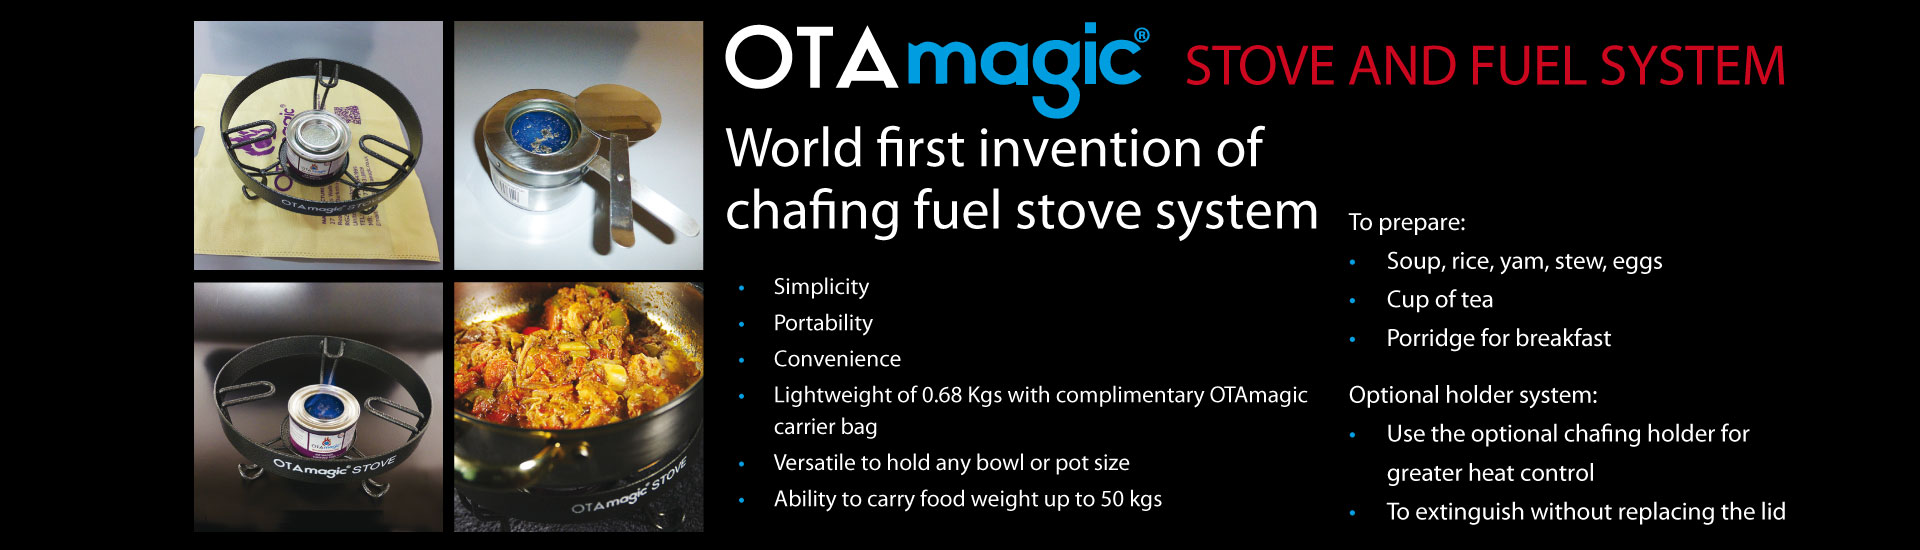 Chafing stove, fuel & holder